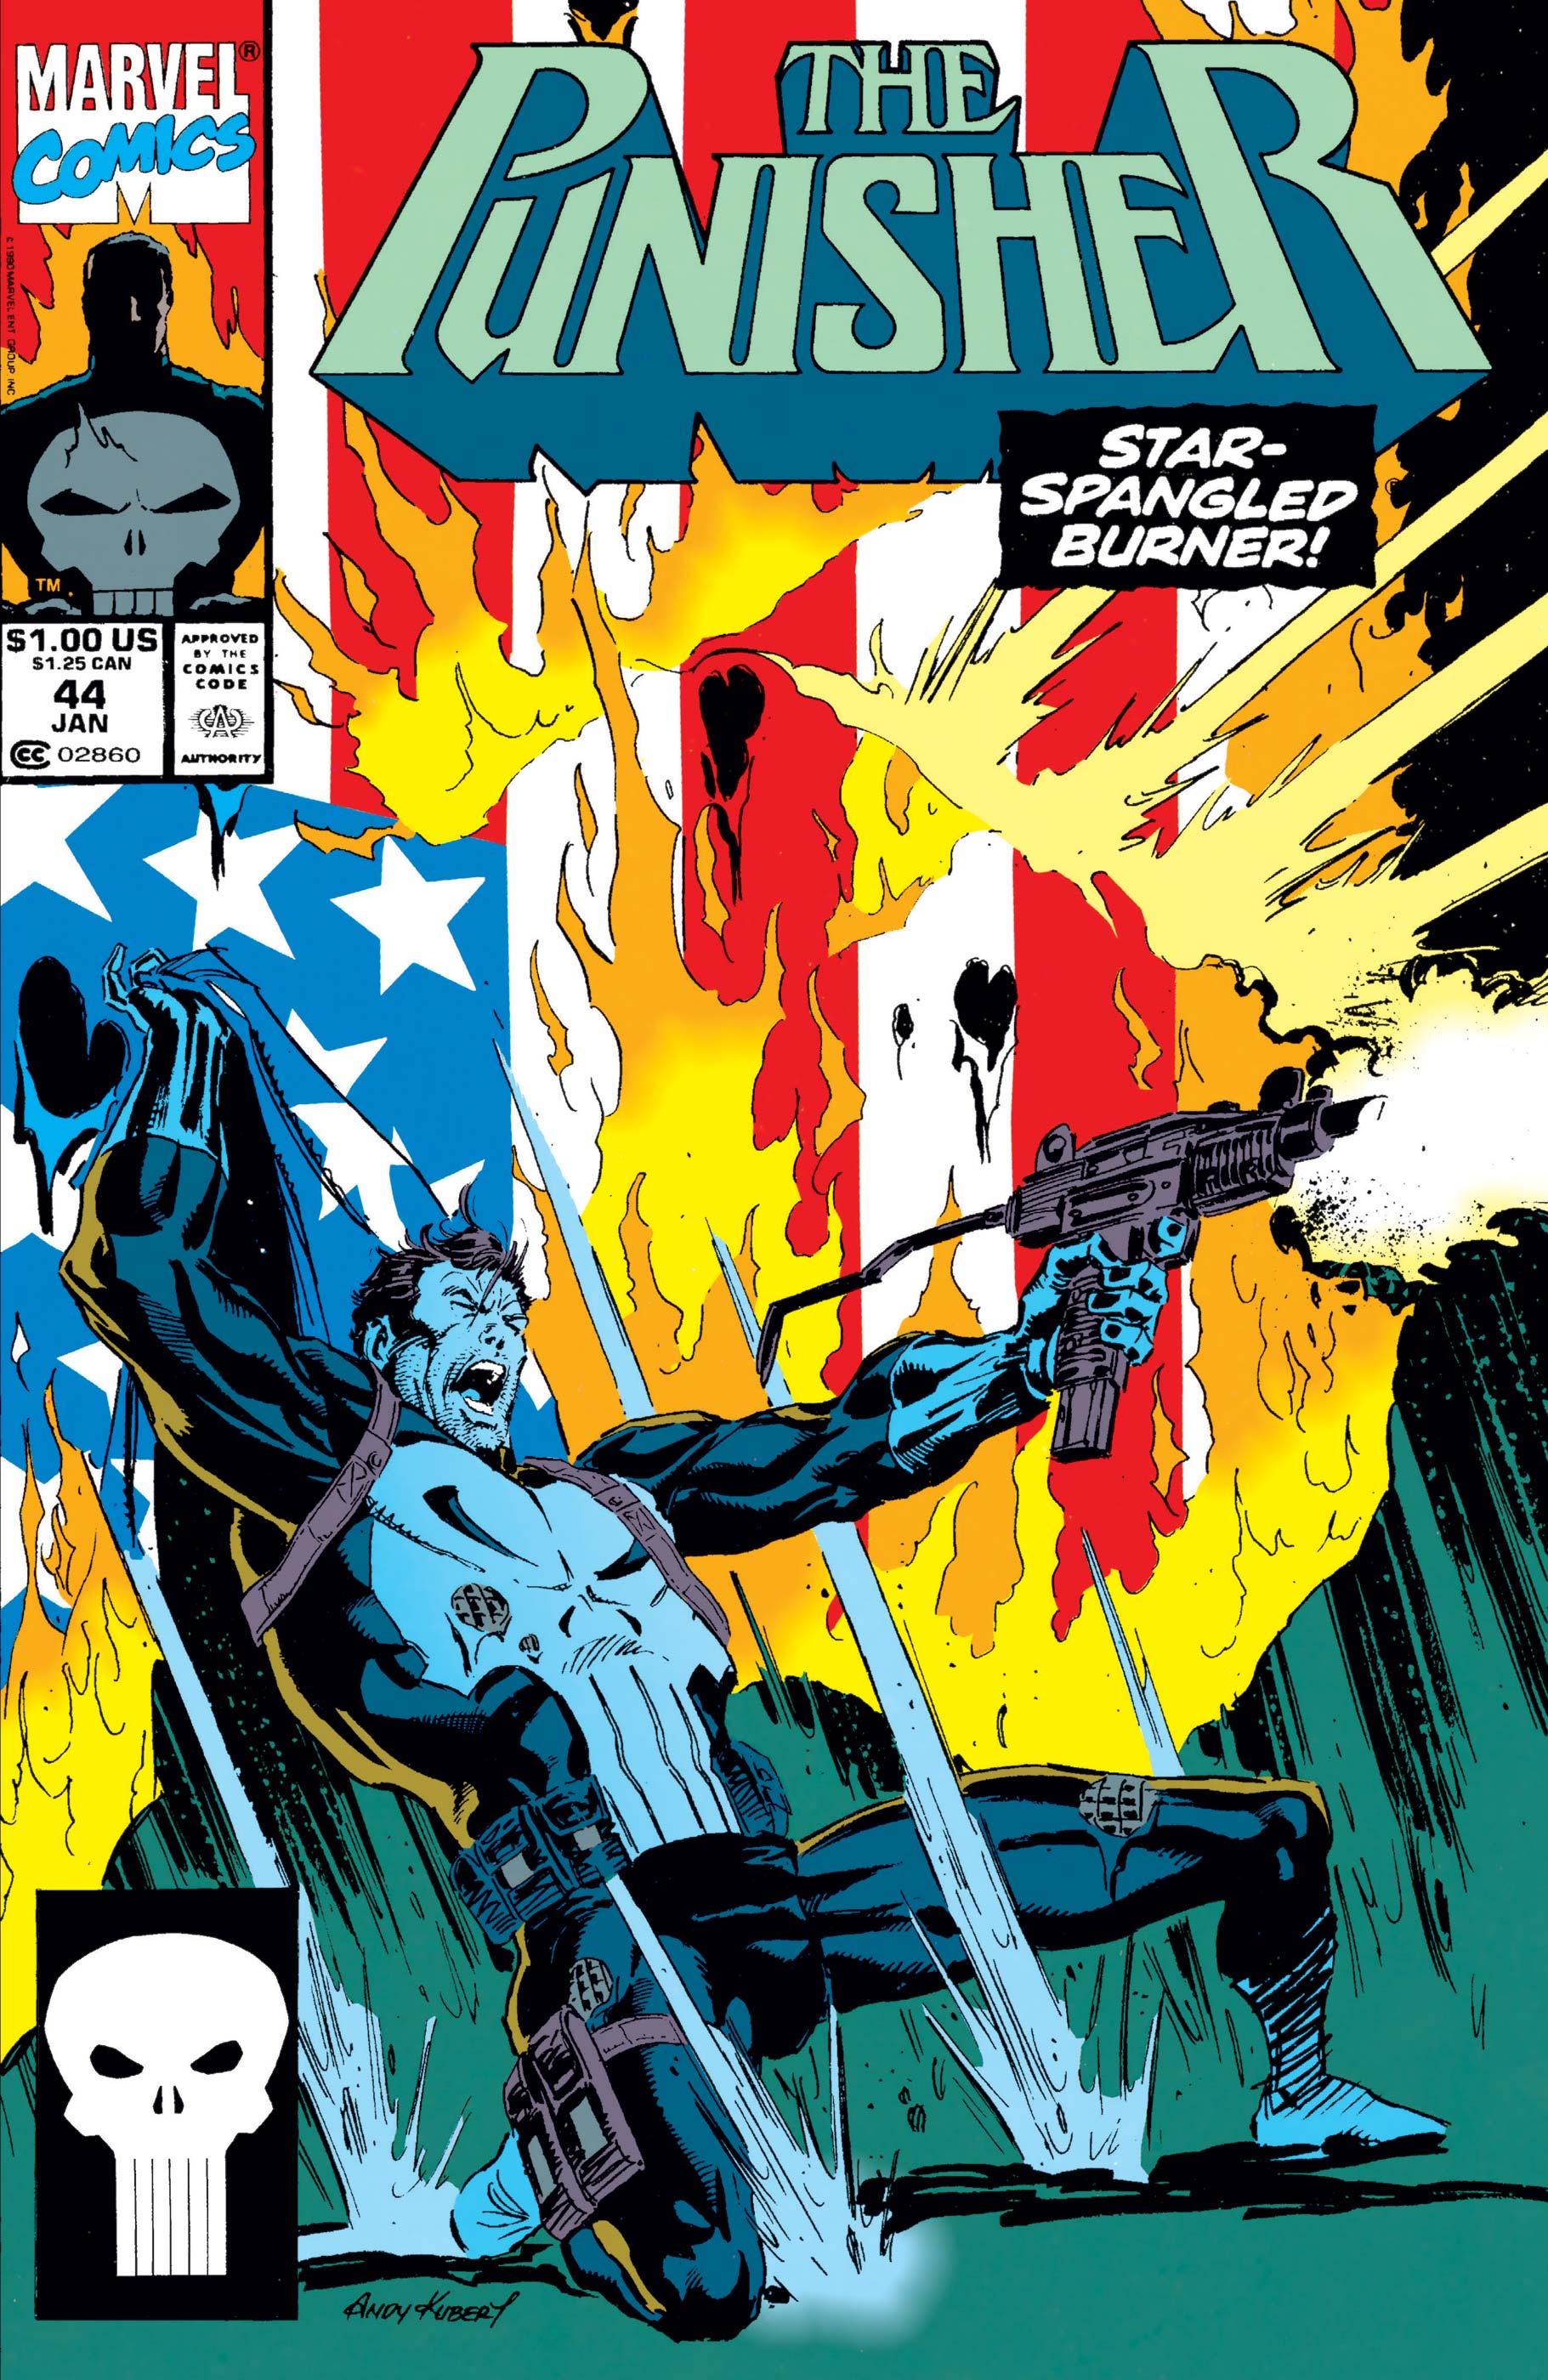 The Punisher (1987) #44